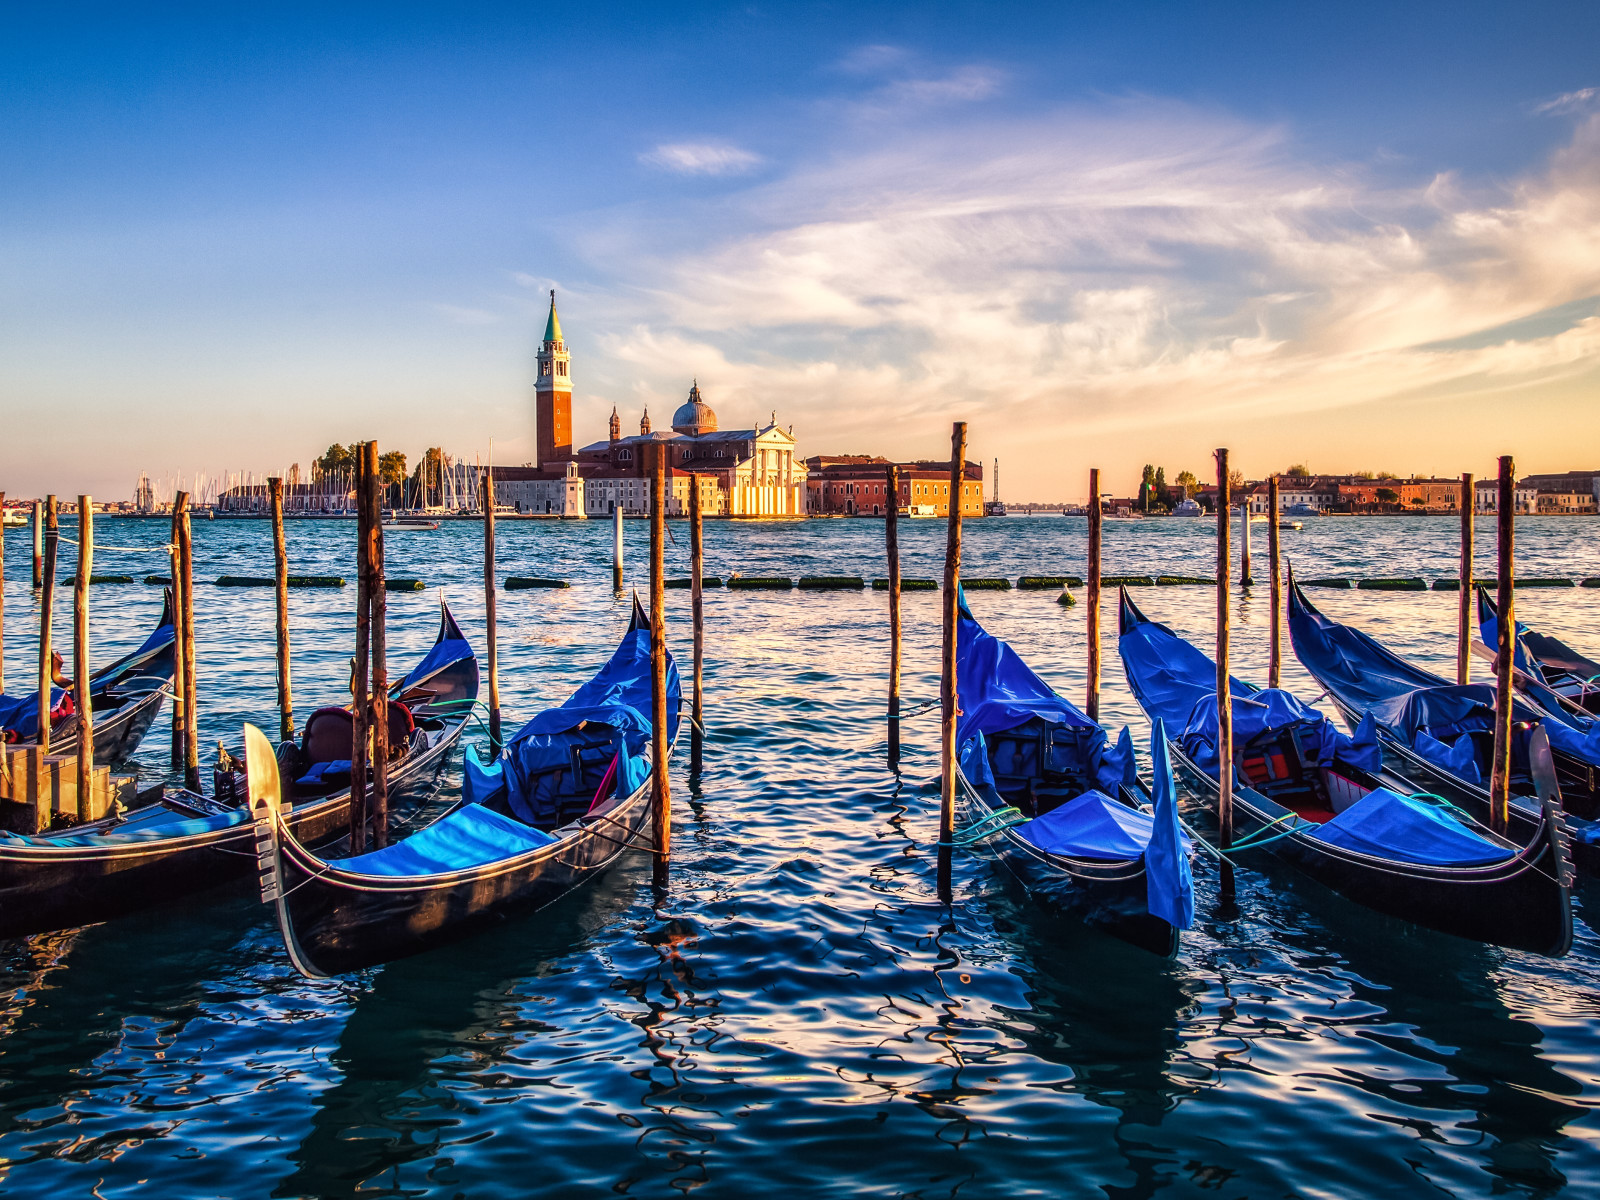 Gondolas from Venice at sunset wallpaper 1600x1200